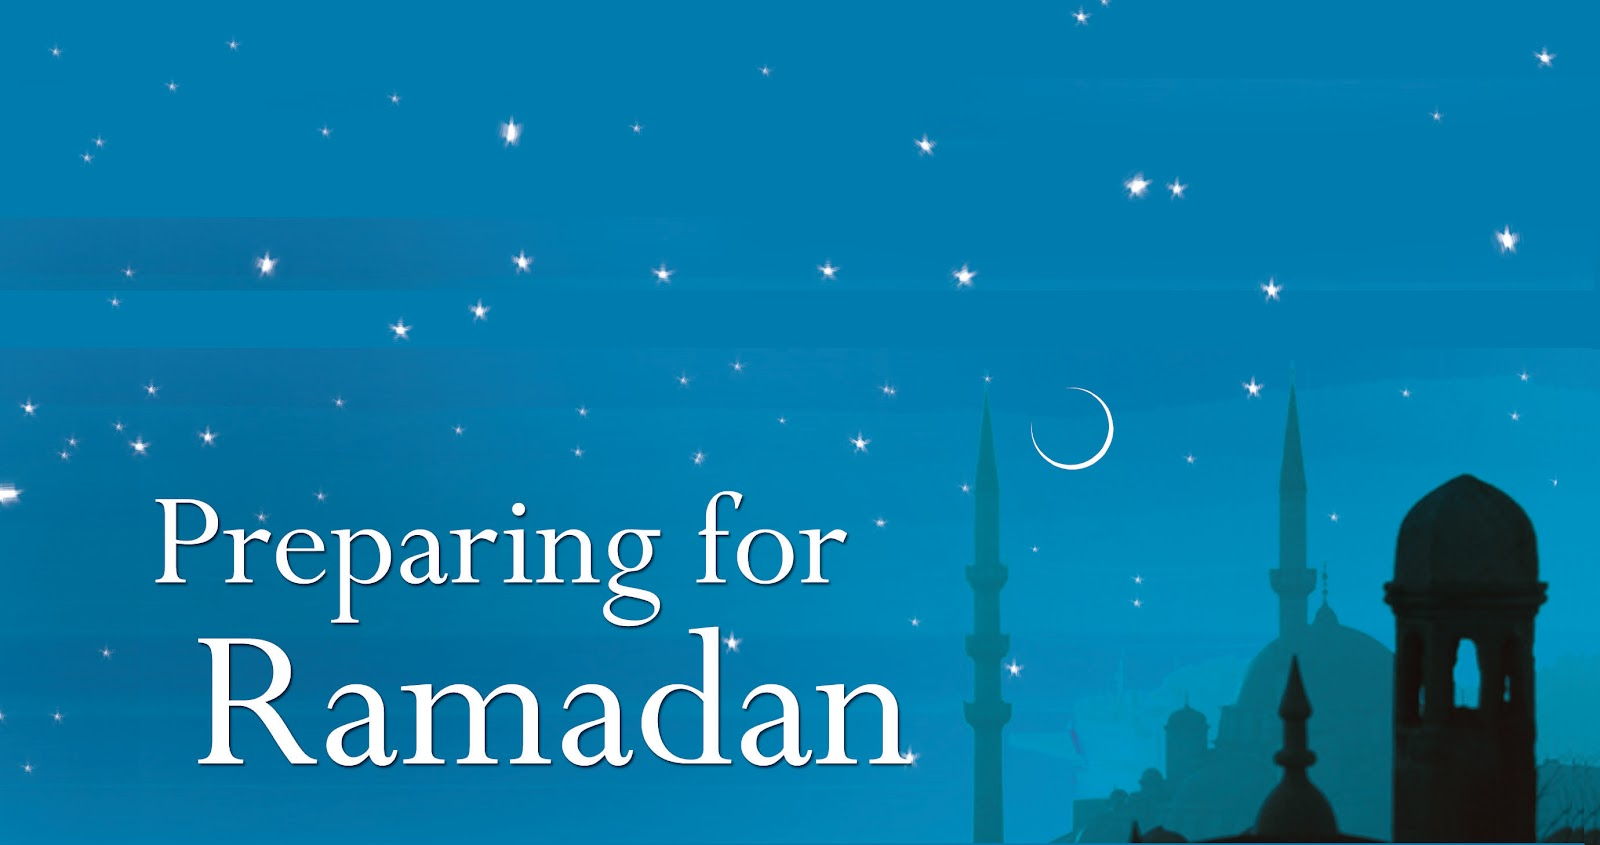 Look Forward, Get Ready for Ramadan